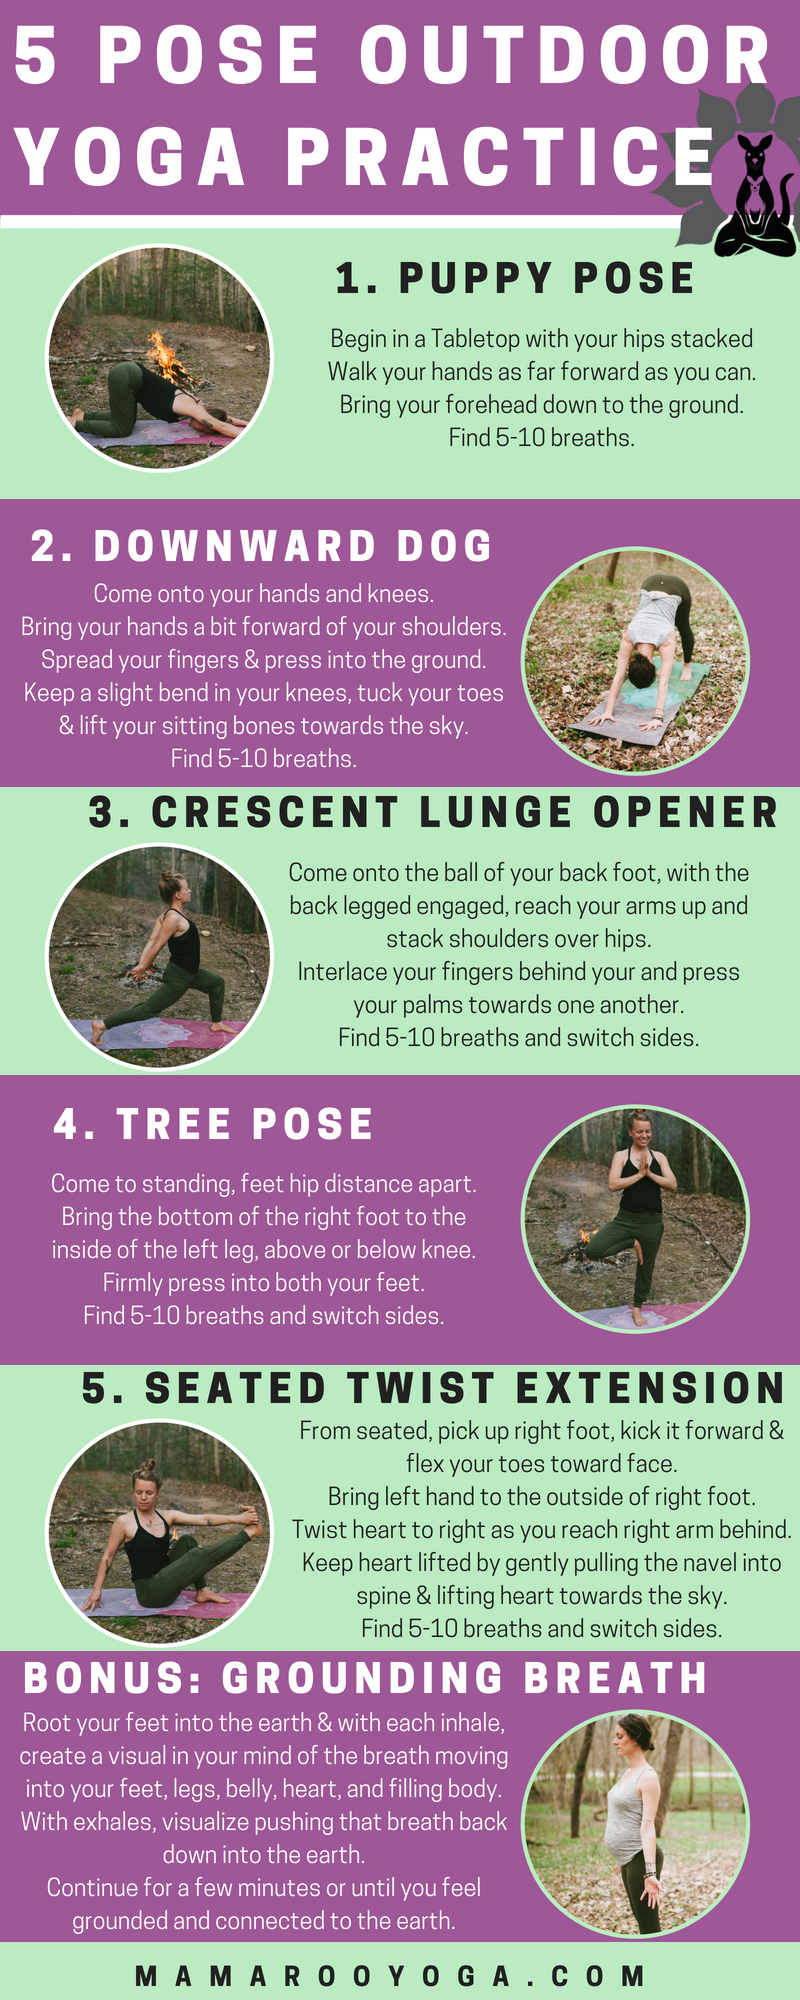 5 Pose Outdoor Yoga Practice Graphic